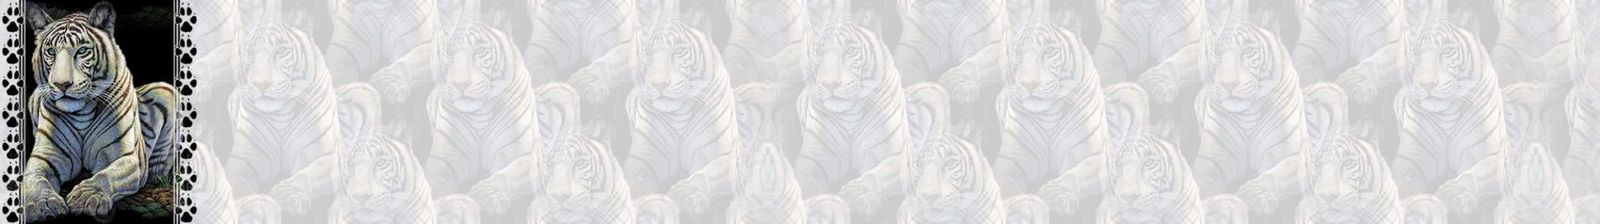 Tigre blanc Incredimail &amp&#x3B; Papier A4 h l &amp&#x3B; outlook &amp&#x3B; enveloppe &amp&#x3B; 2 cartes A5     white_tiger_egs_110702_jp